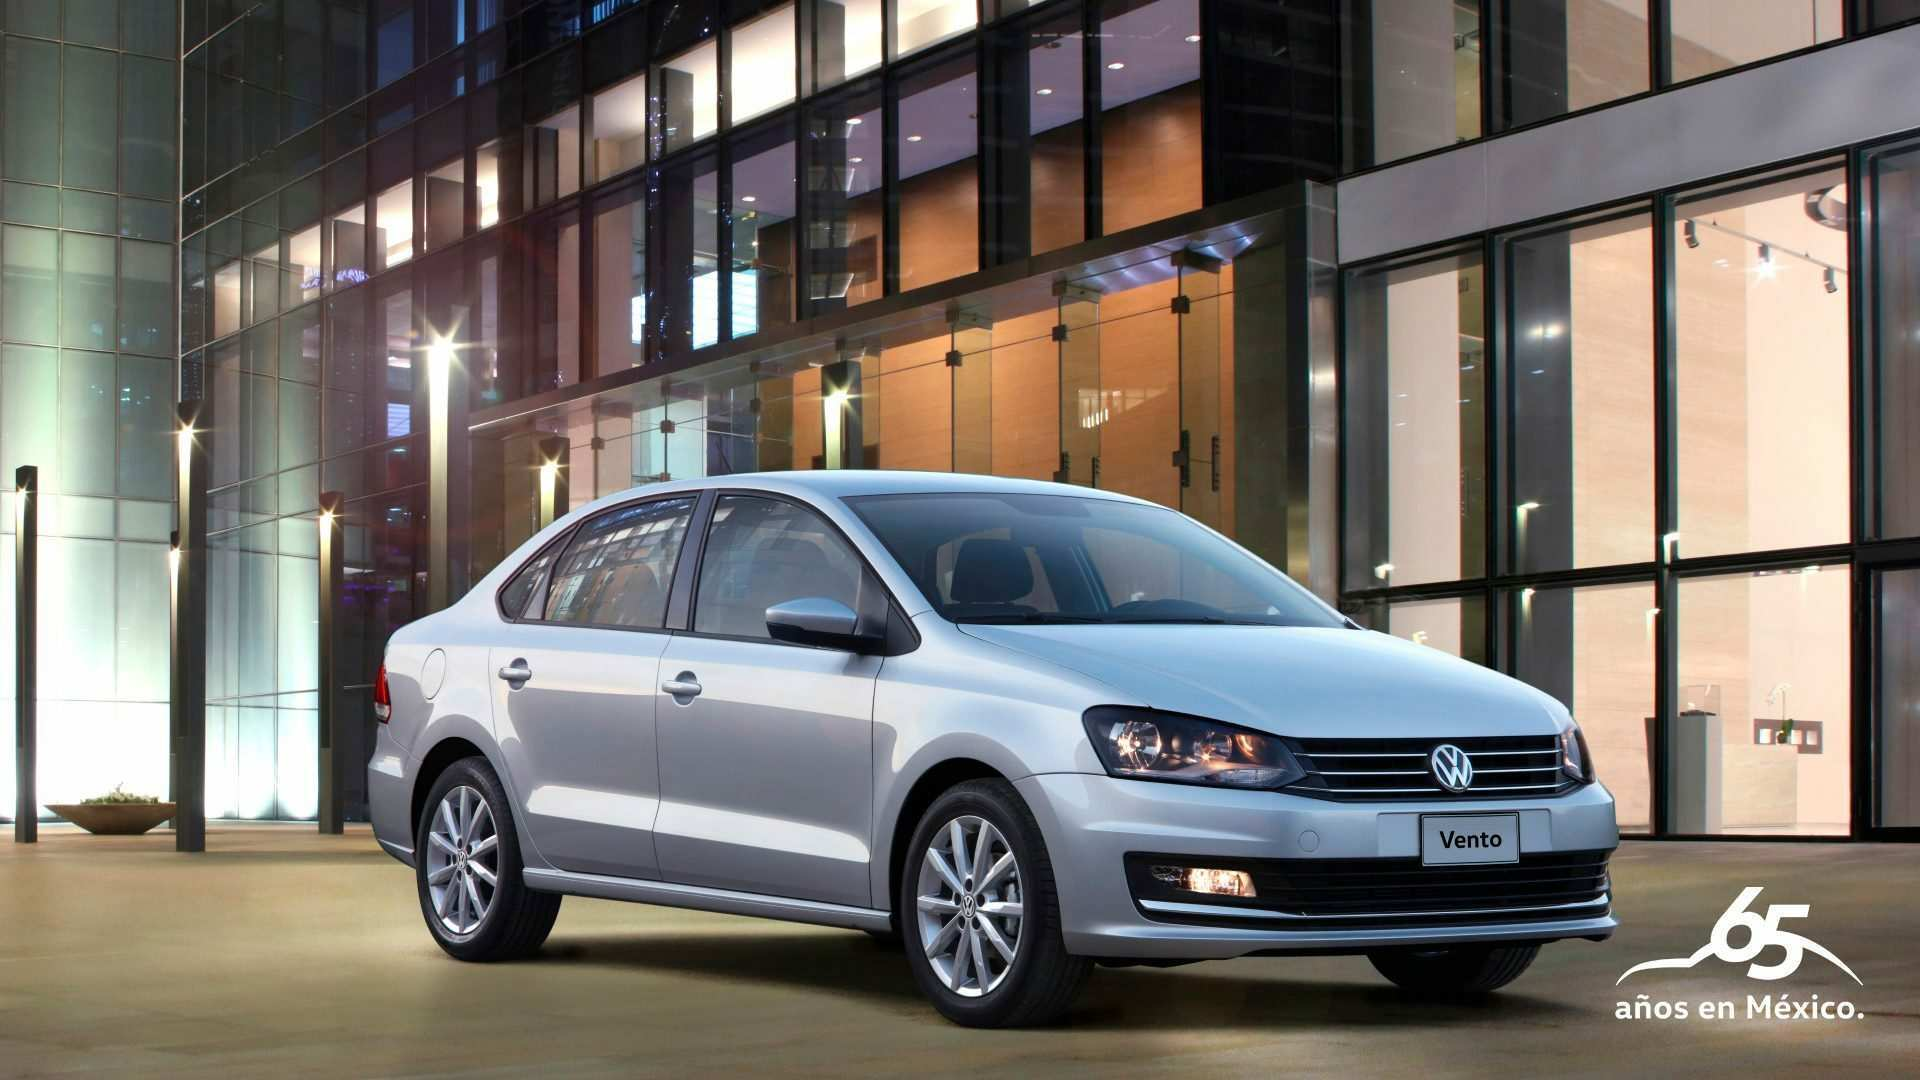 79 The Best Vento Volkswagen 2019 Photos